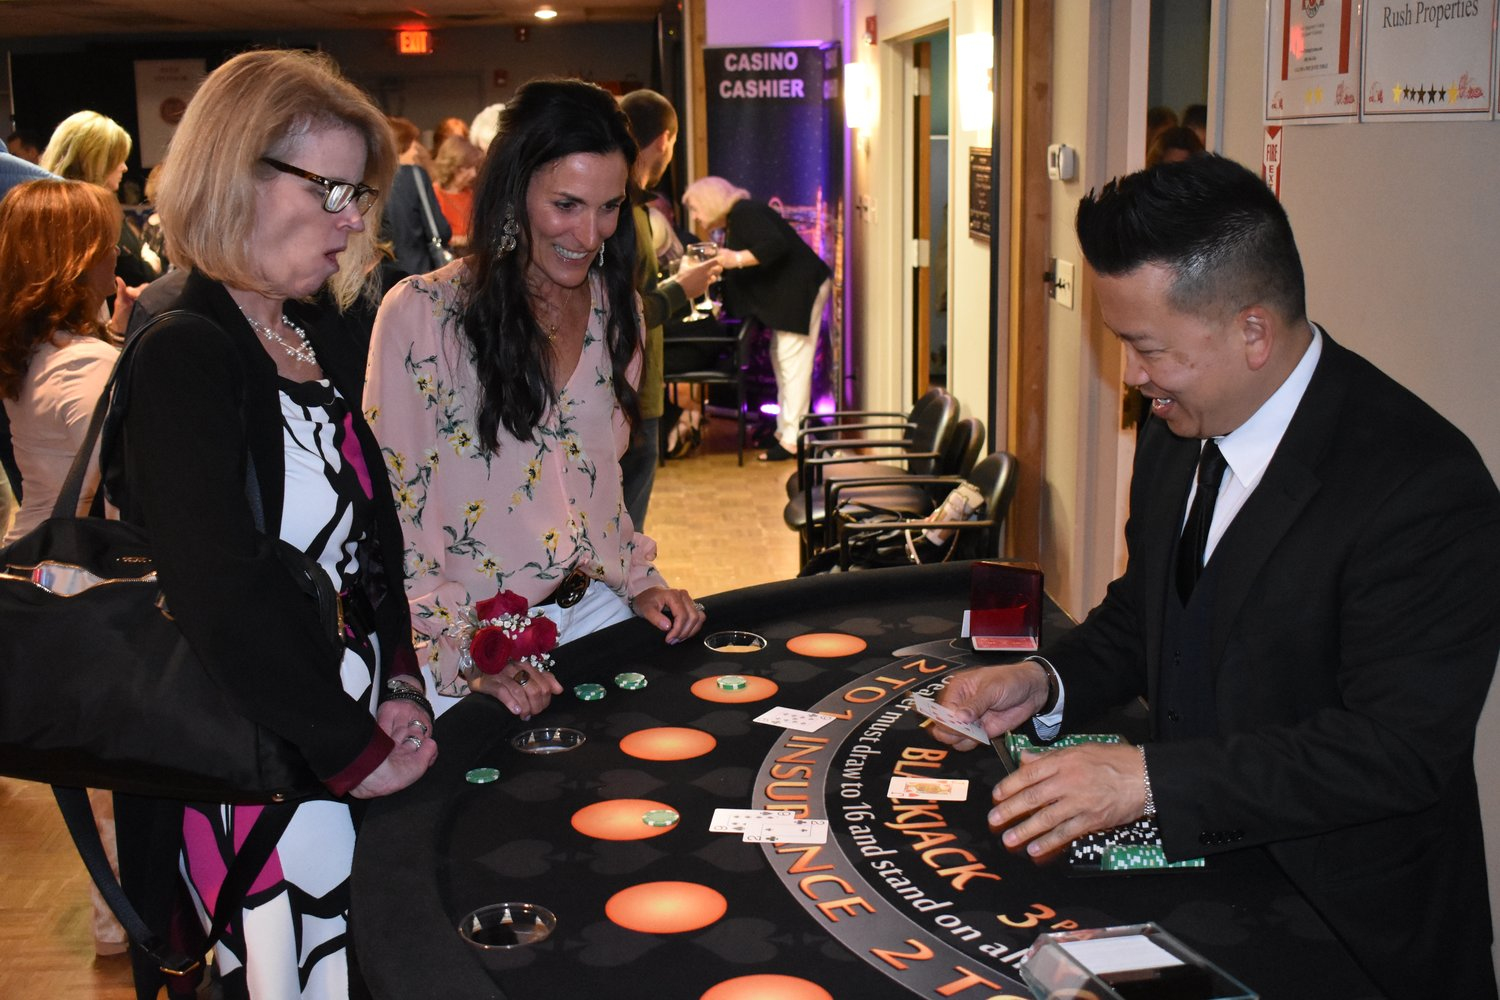 Regina Phillips, left, and Christine Grillo played blackjack at Monte Carlo Night on May 3.